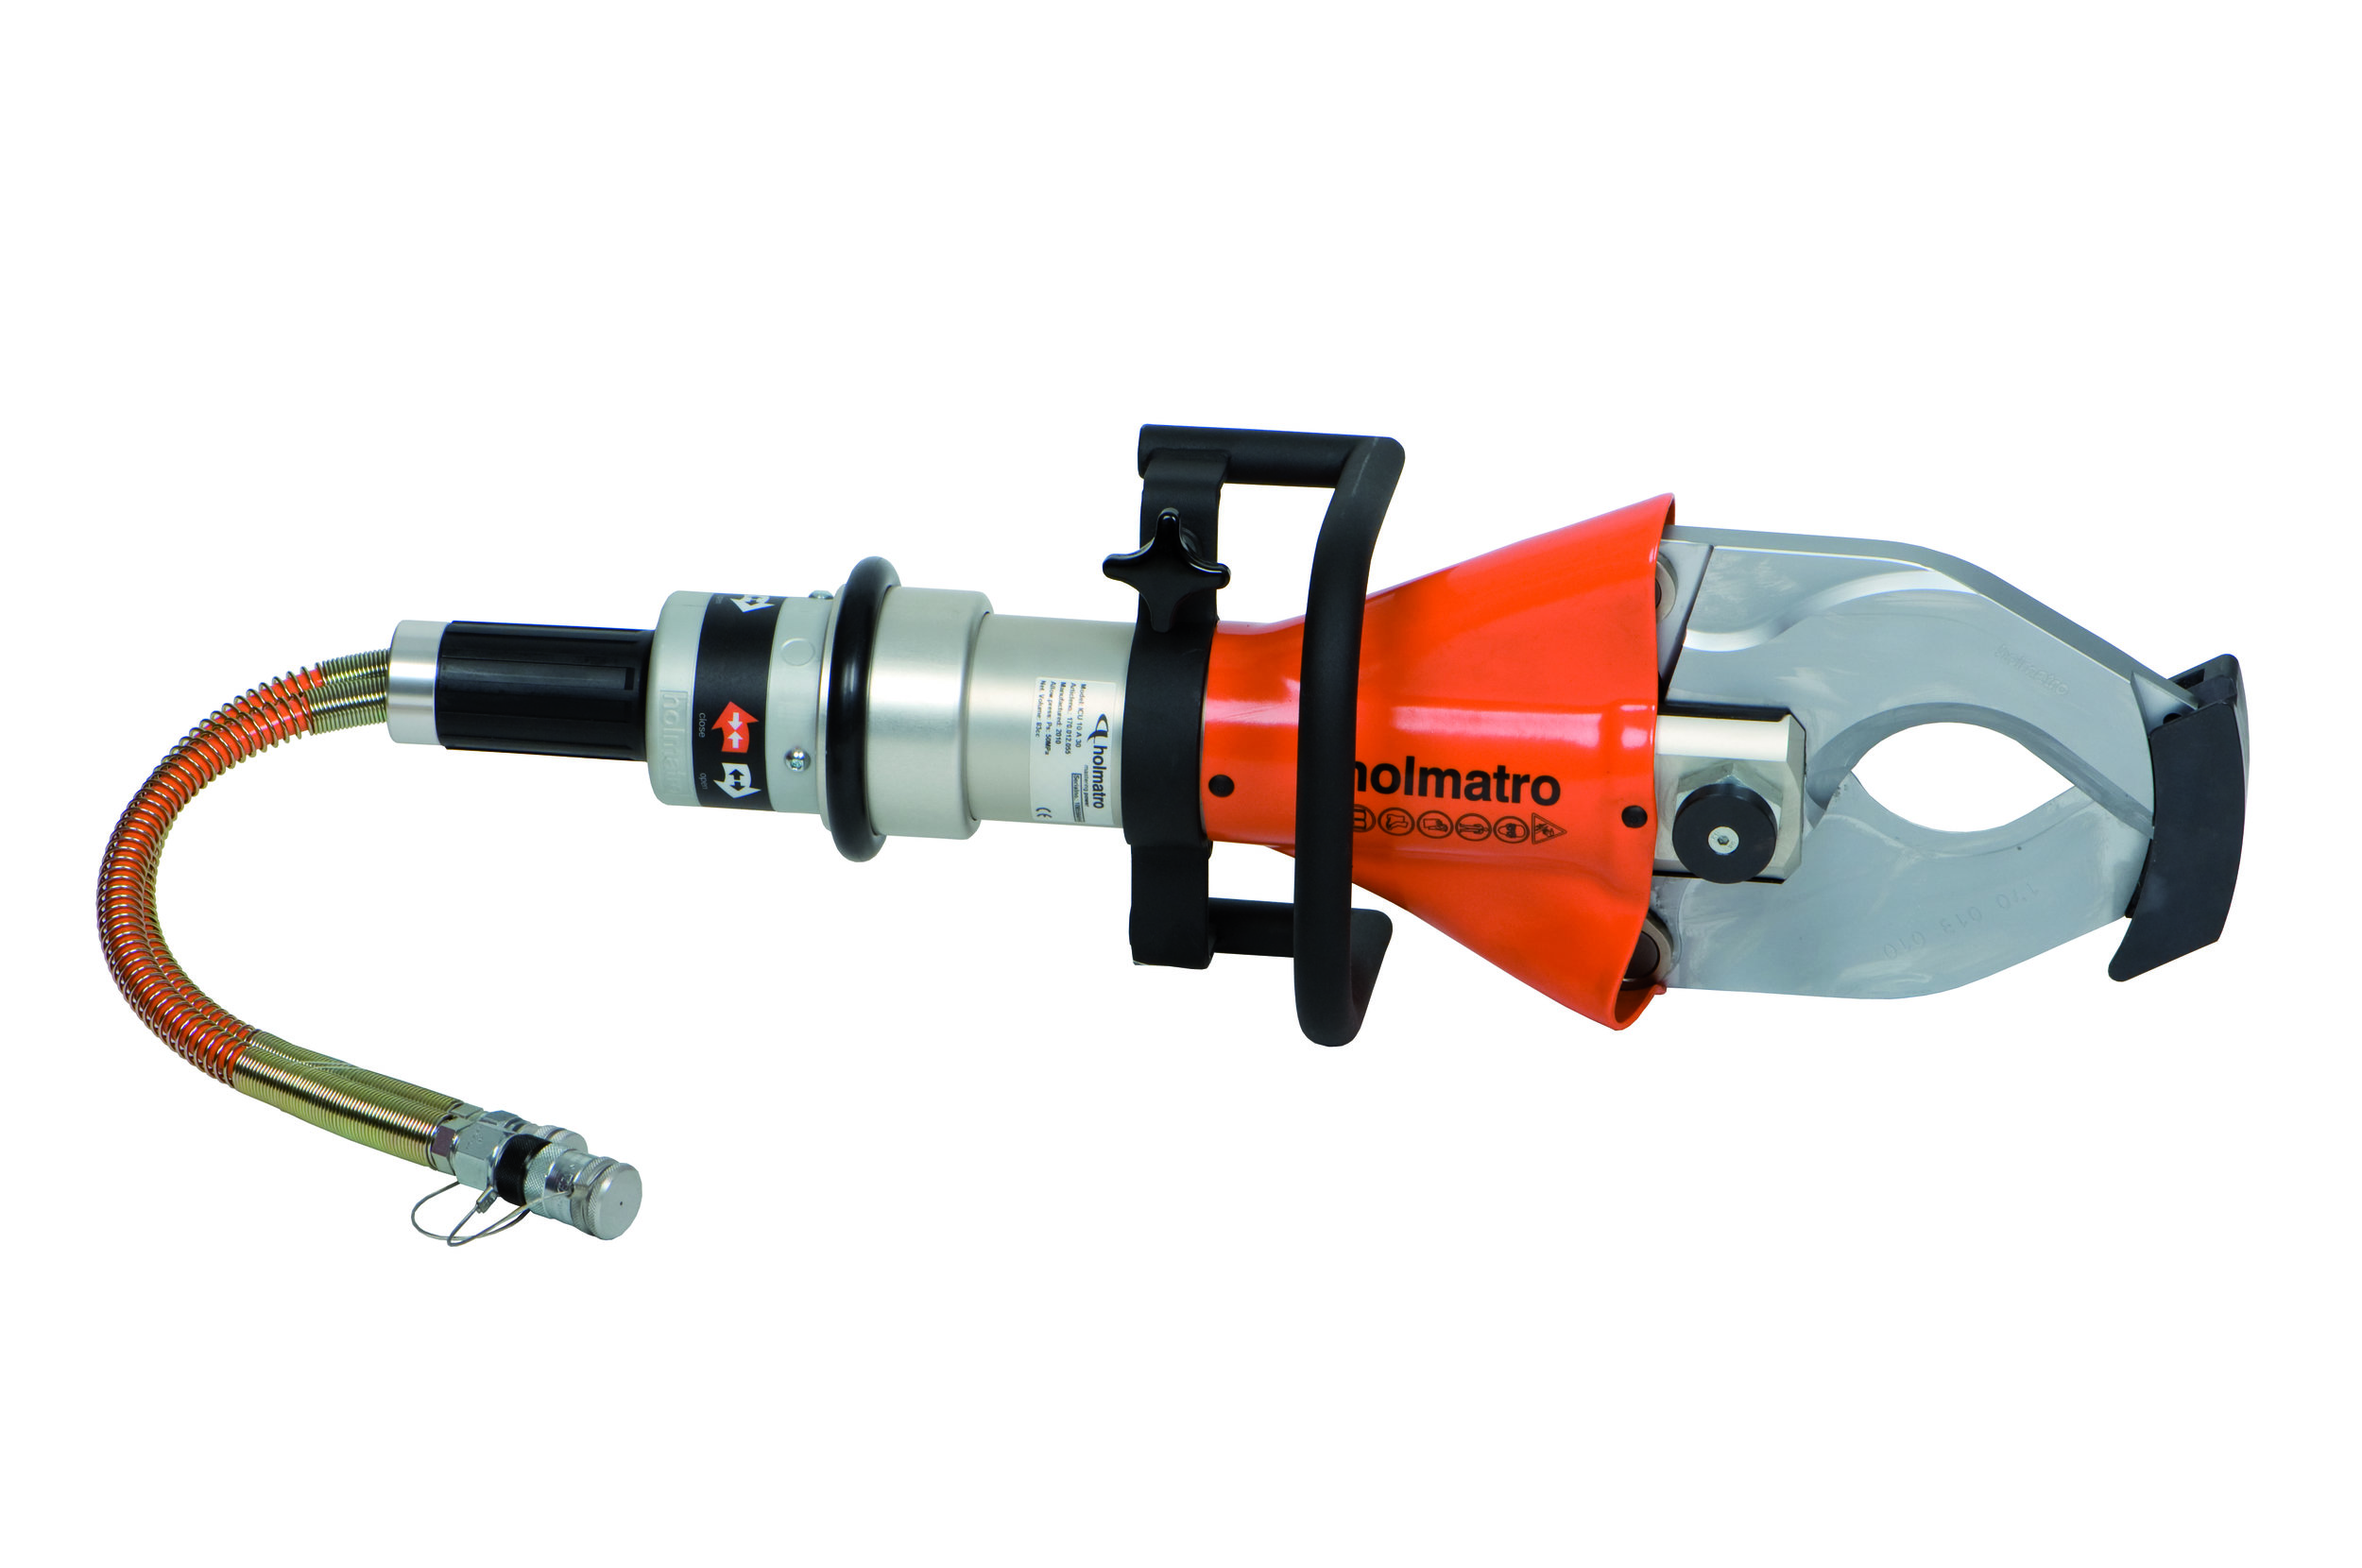 Holmatro Hydraulic Shears